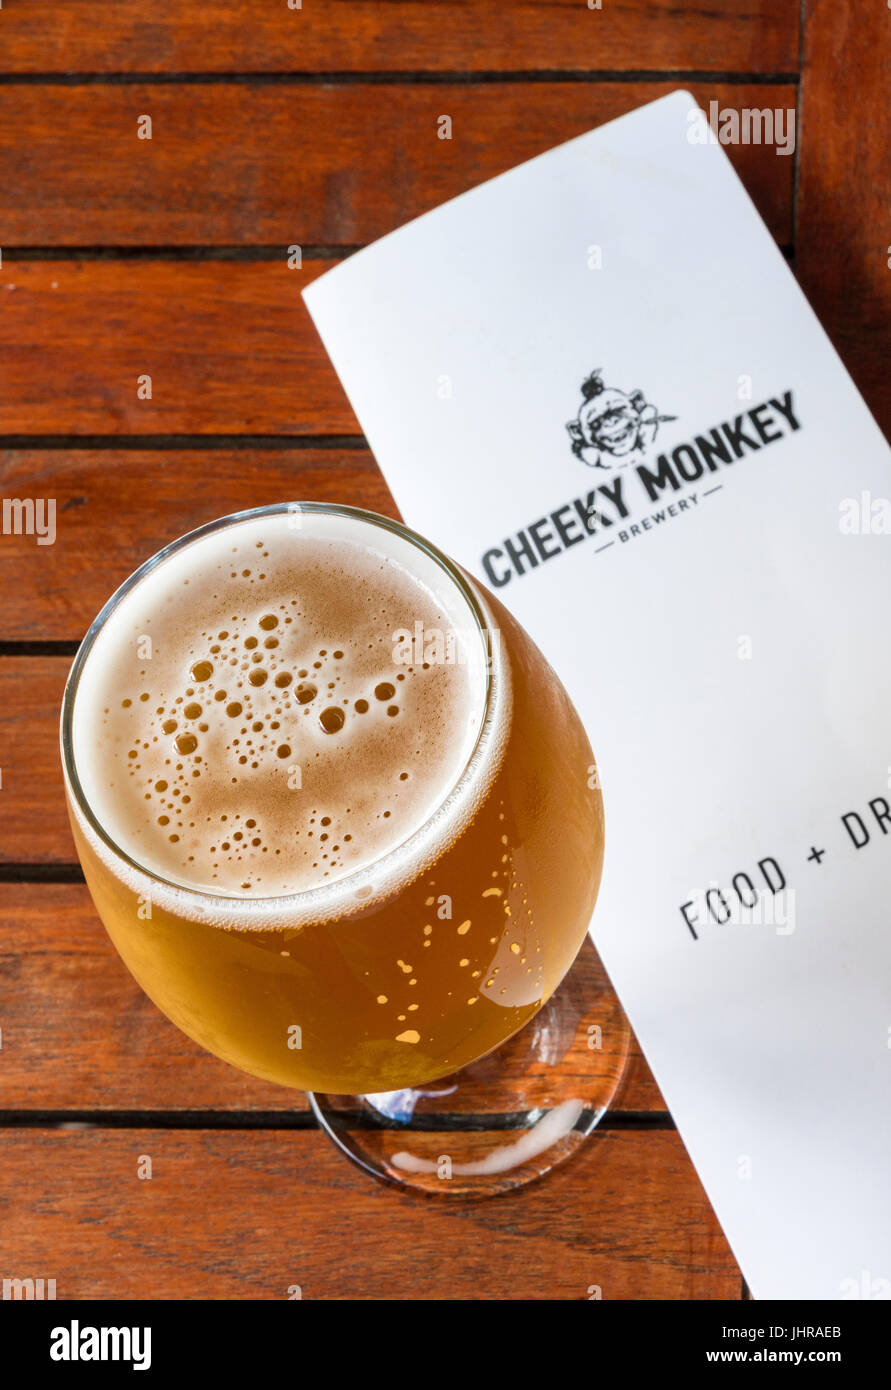 Focus on a glass of Blonde Ale beer at the Cheeky Monkey Brewery, Wilyabrup, Western Australia - Stock Image